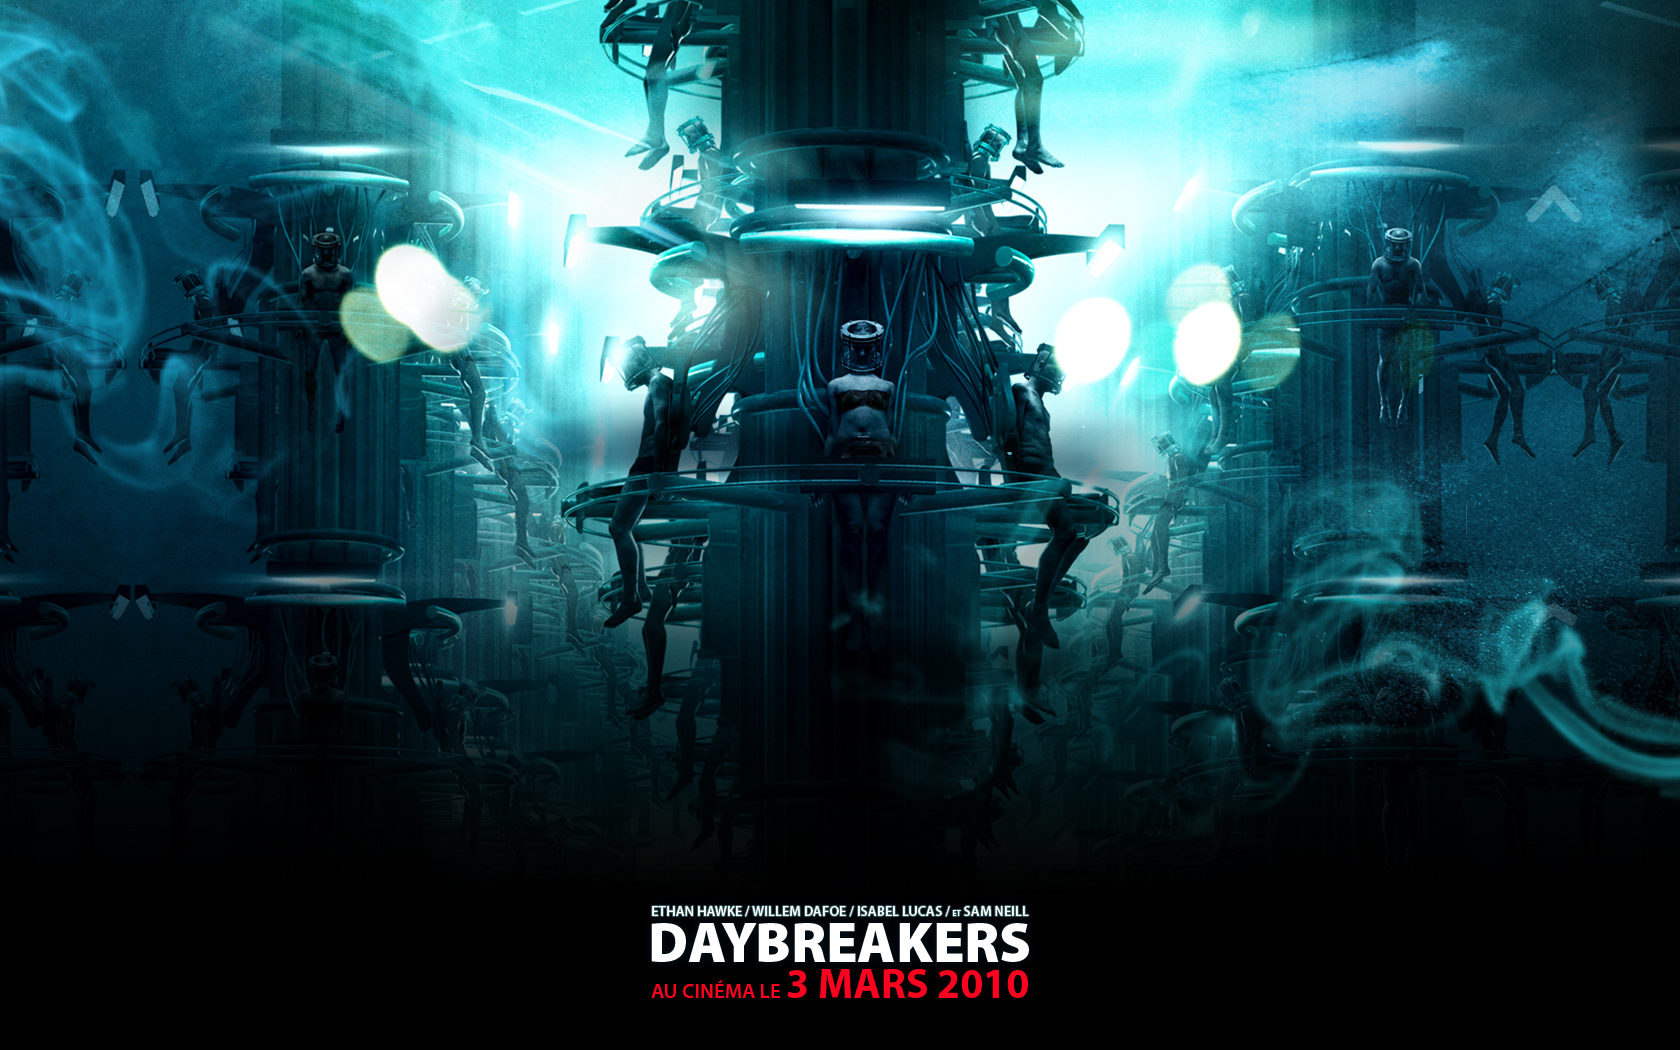 Daybreakers_01_1680x1050.jpg